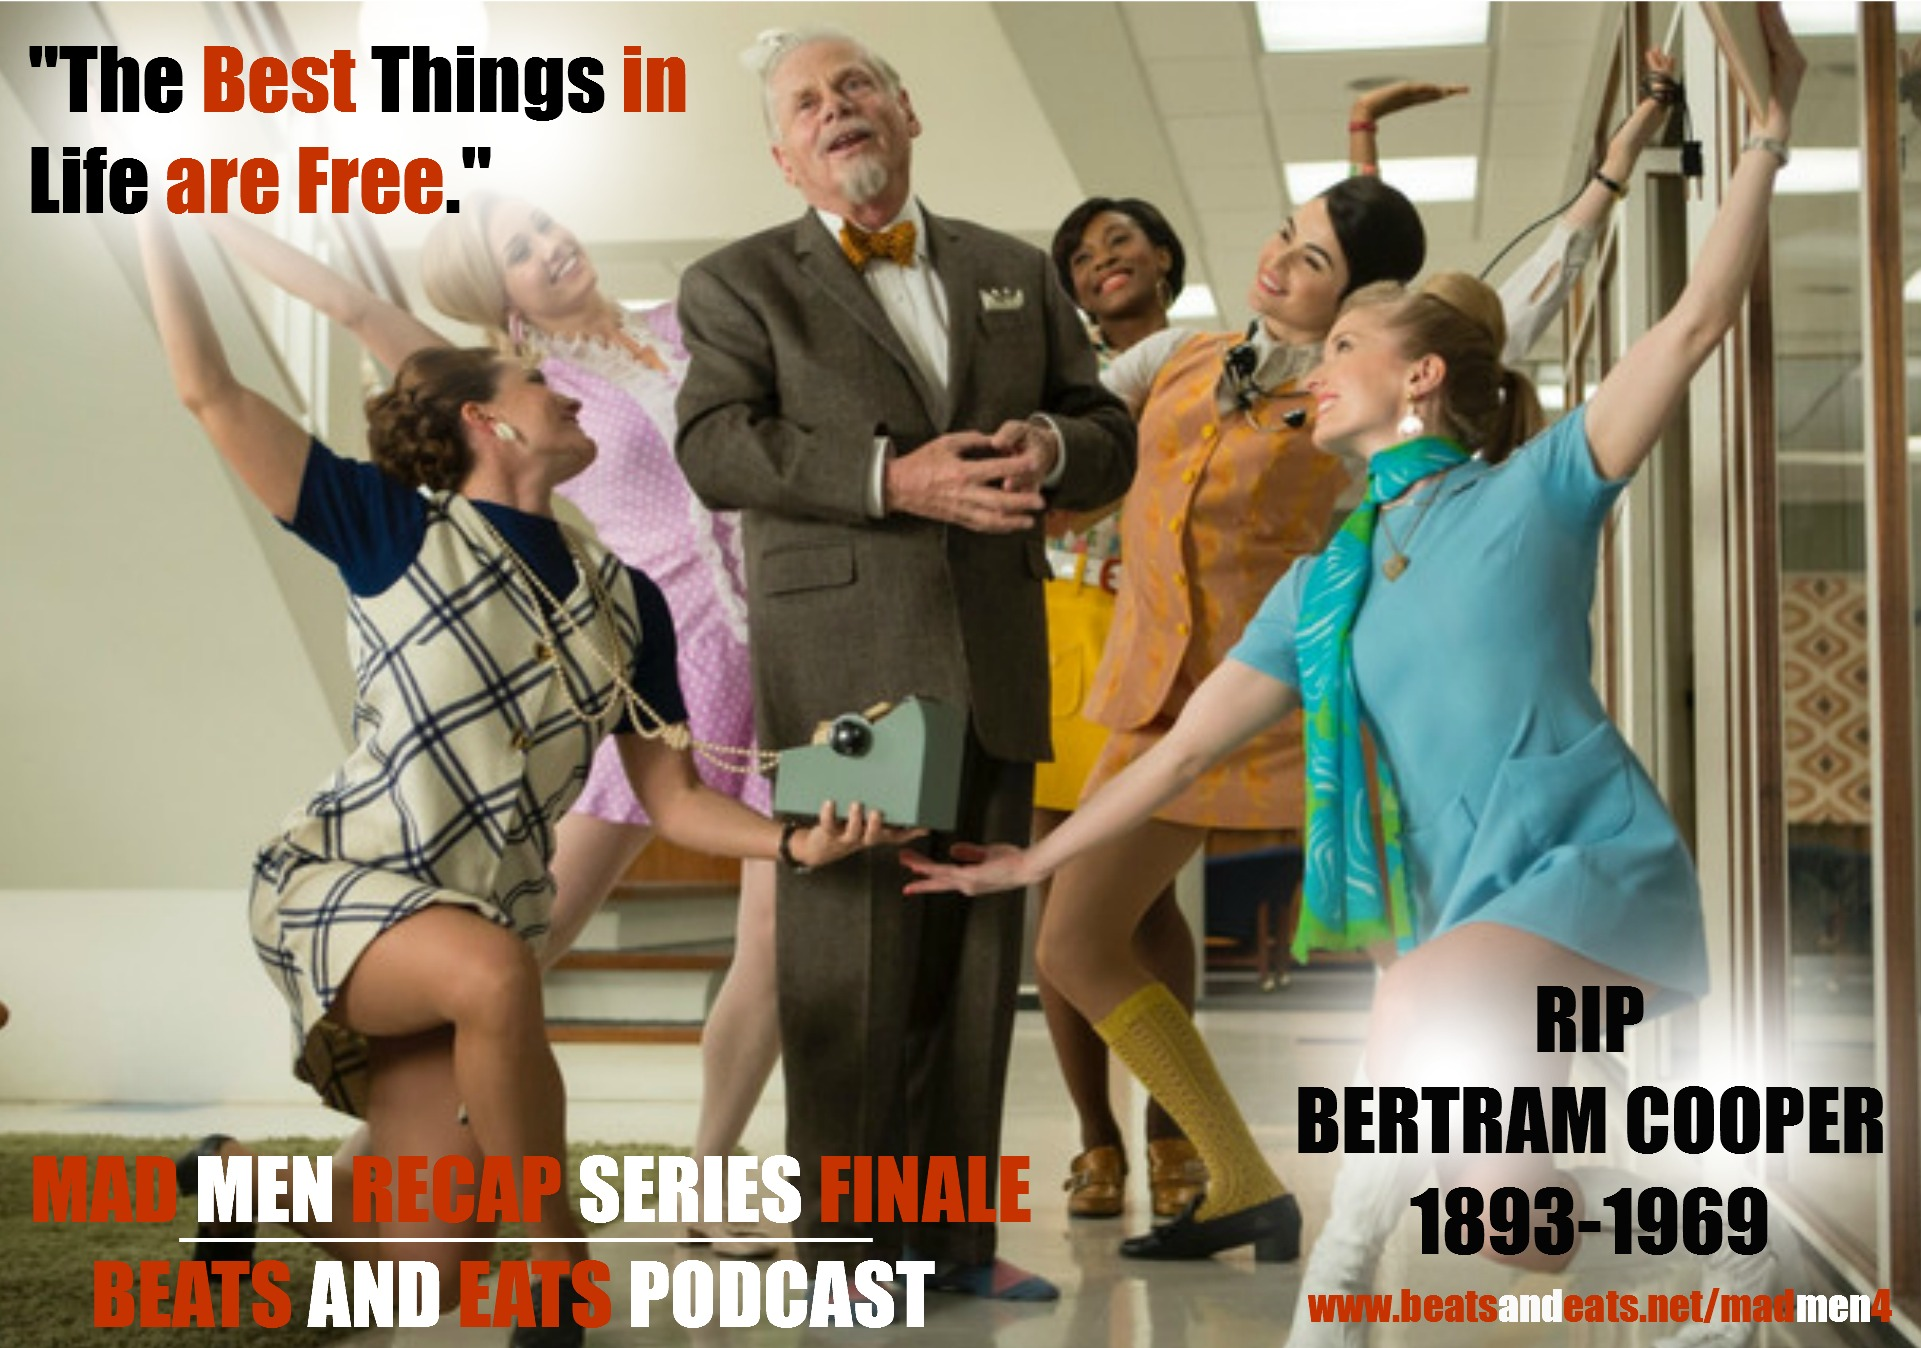 B&E: Mad Men Recap Season Finale | Episode 7 | Season 7 Part 1 Finale | AMC